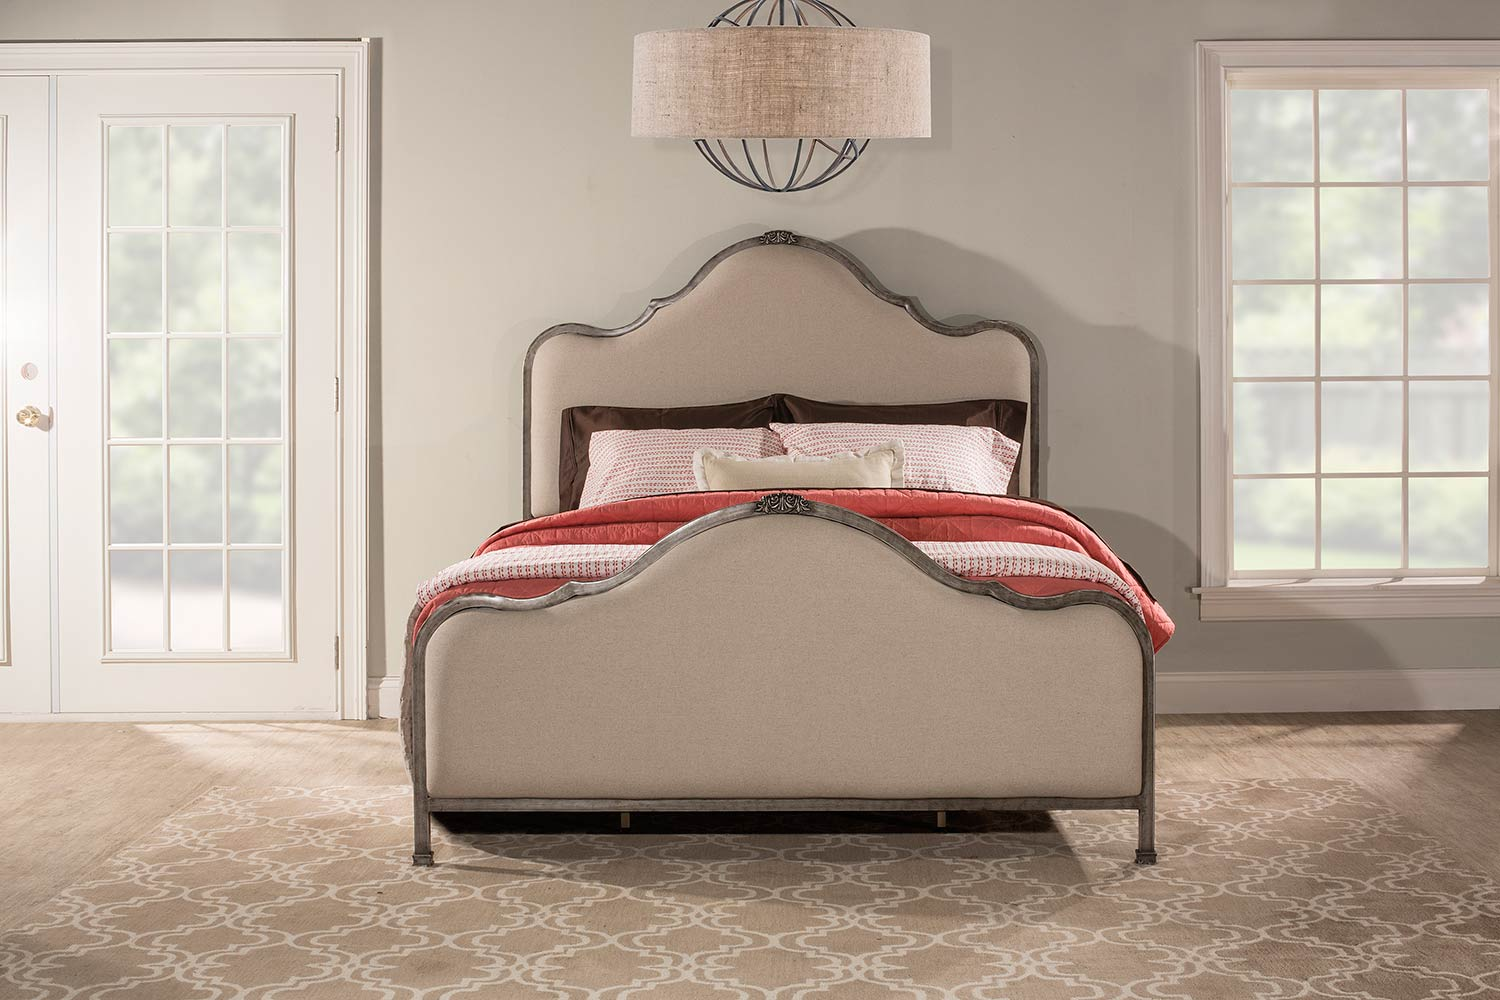 Hillsdale Delray Bed - Aged Steel